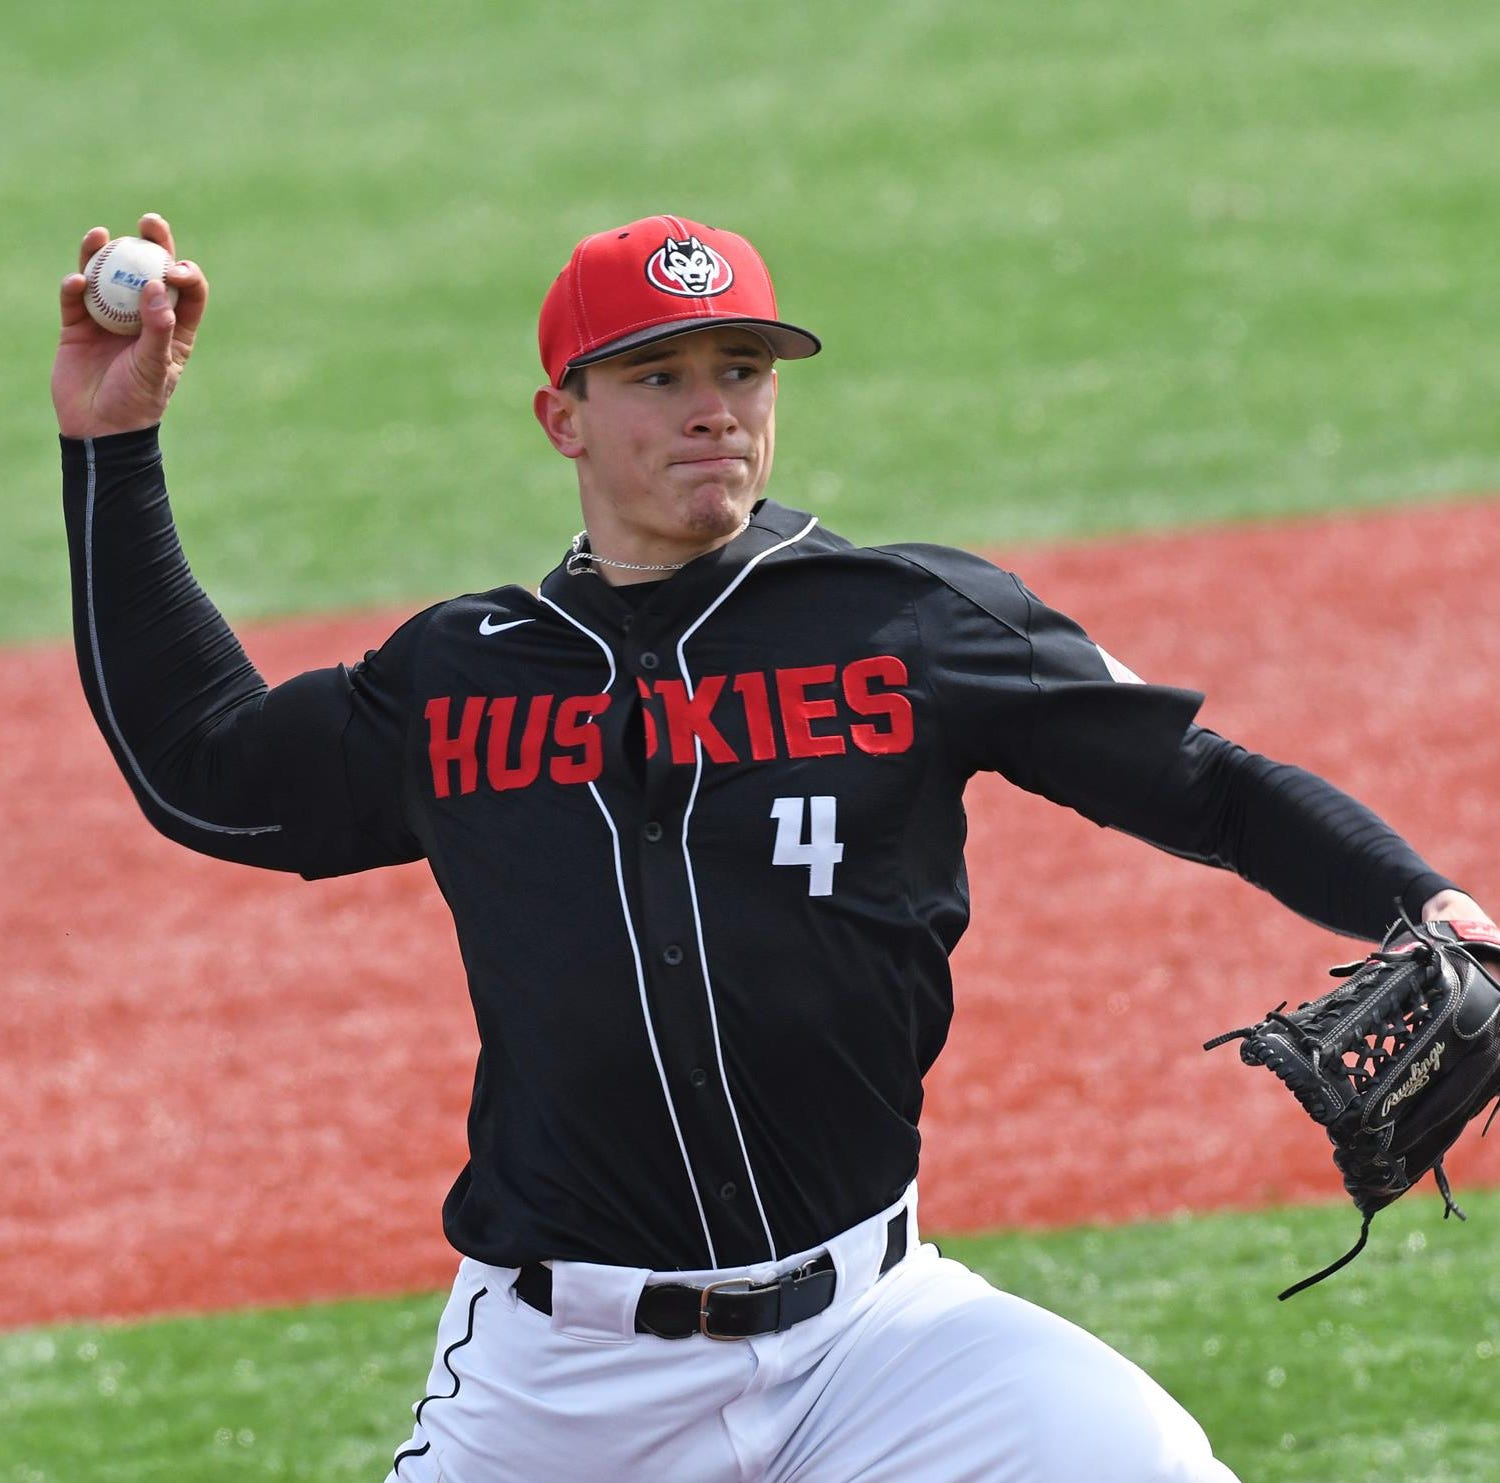 Leaving an impression: Former Cathedral star on verge of SCSU strikeout record